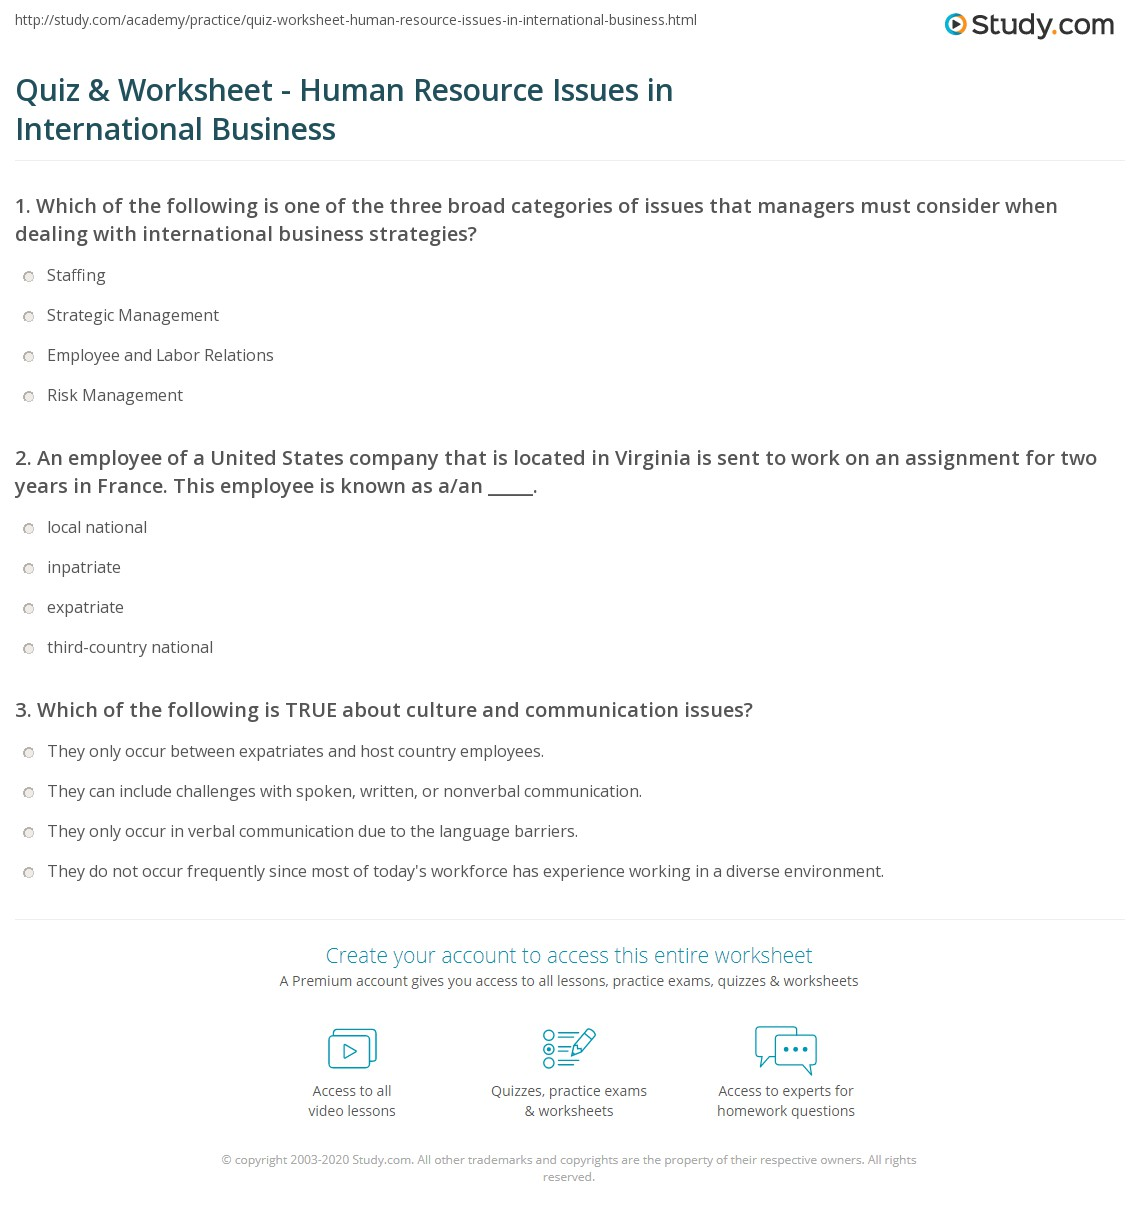 quiz worksheet human resource issues in international business. Black Bedroom Furniture Sets. Home Design Ideas